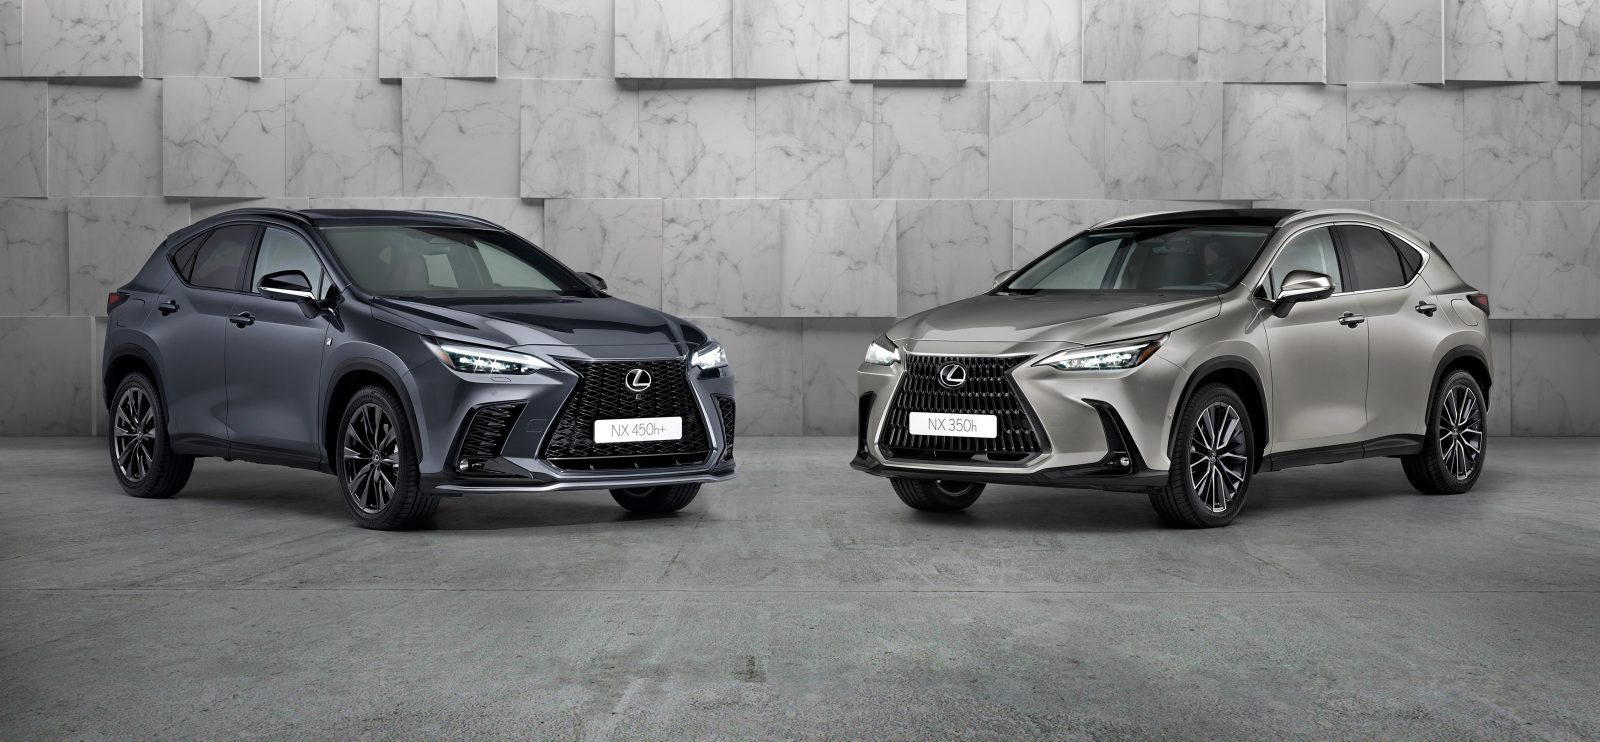 All-new NX 350h and NX 450h